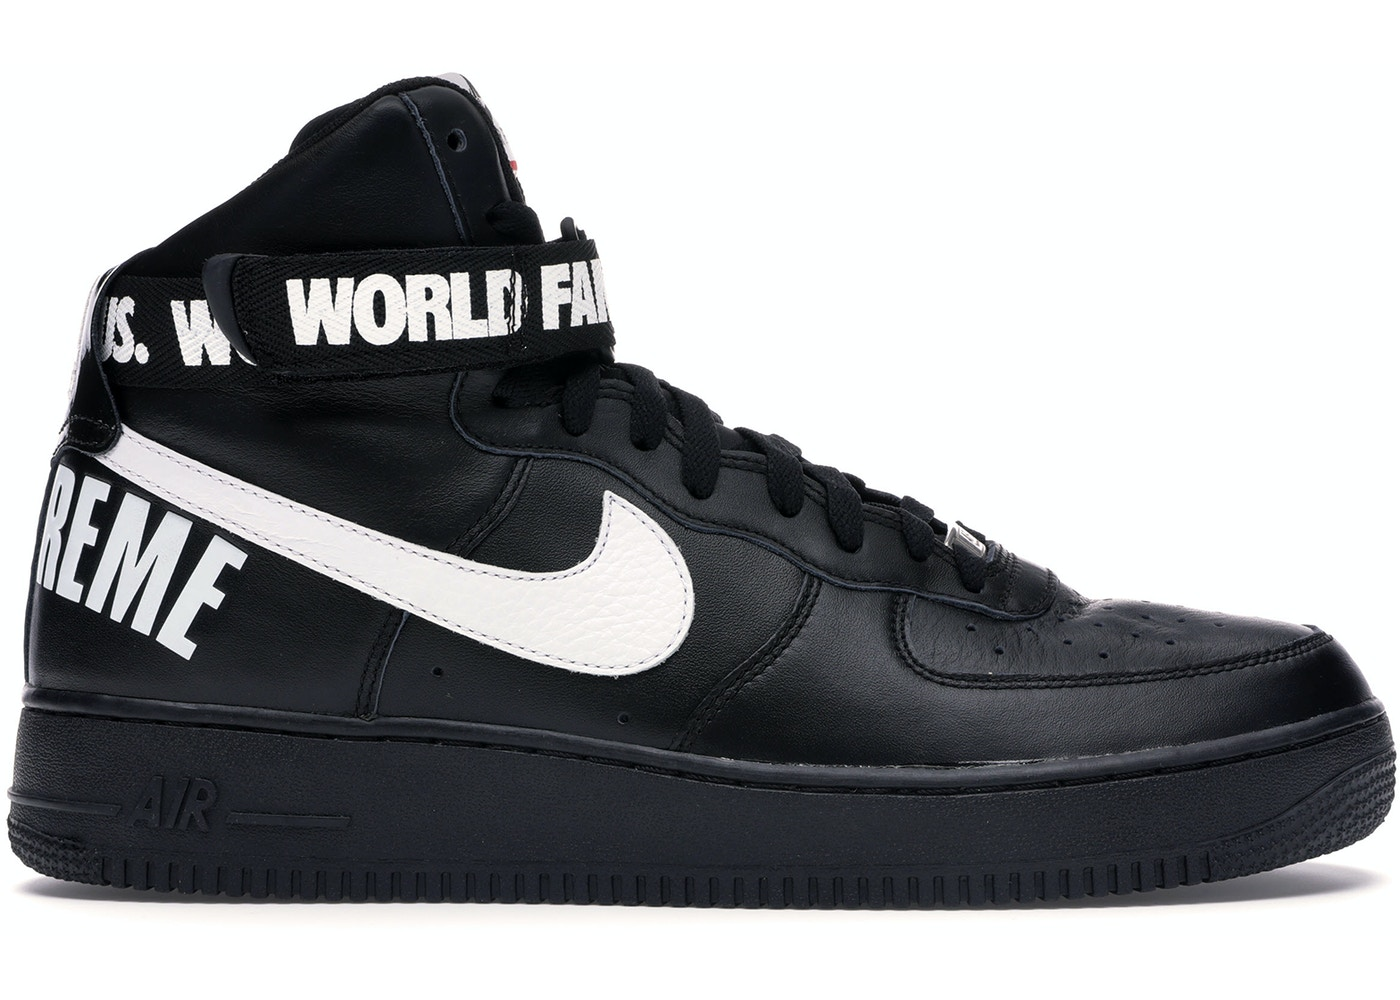 sale retailer ee9b0 38952 Air Force 1 High Supreme World Famous Black - 698696-010